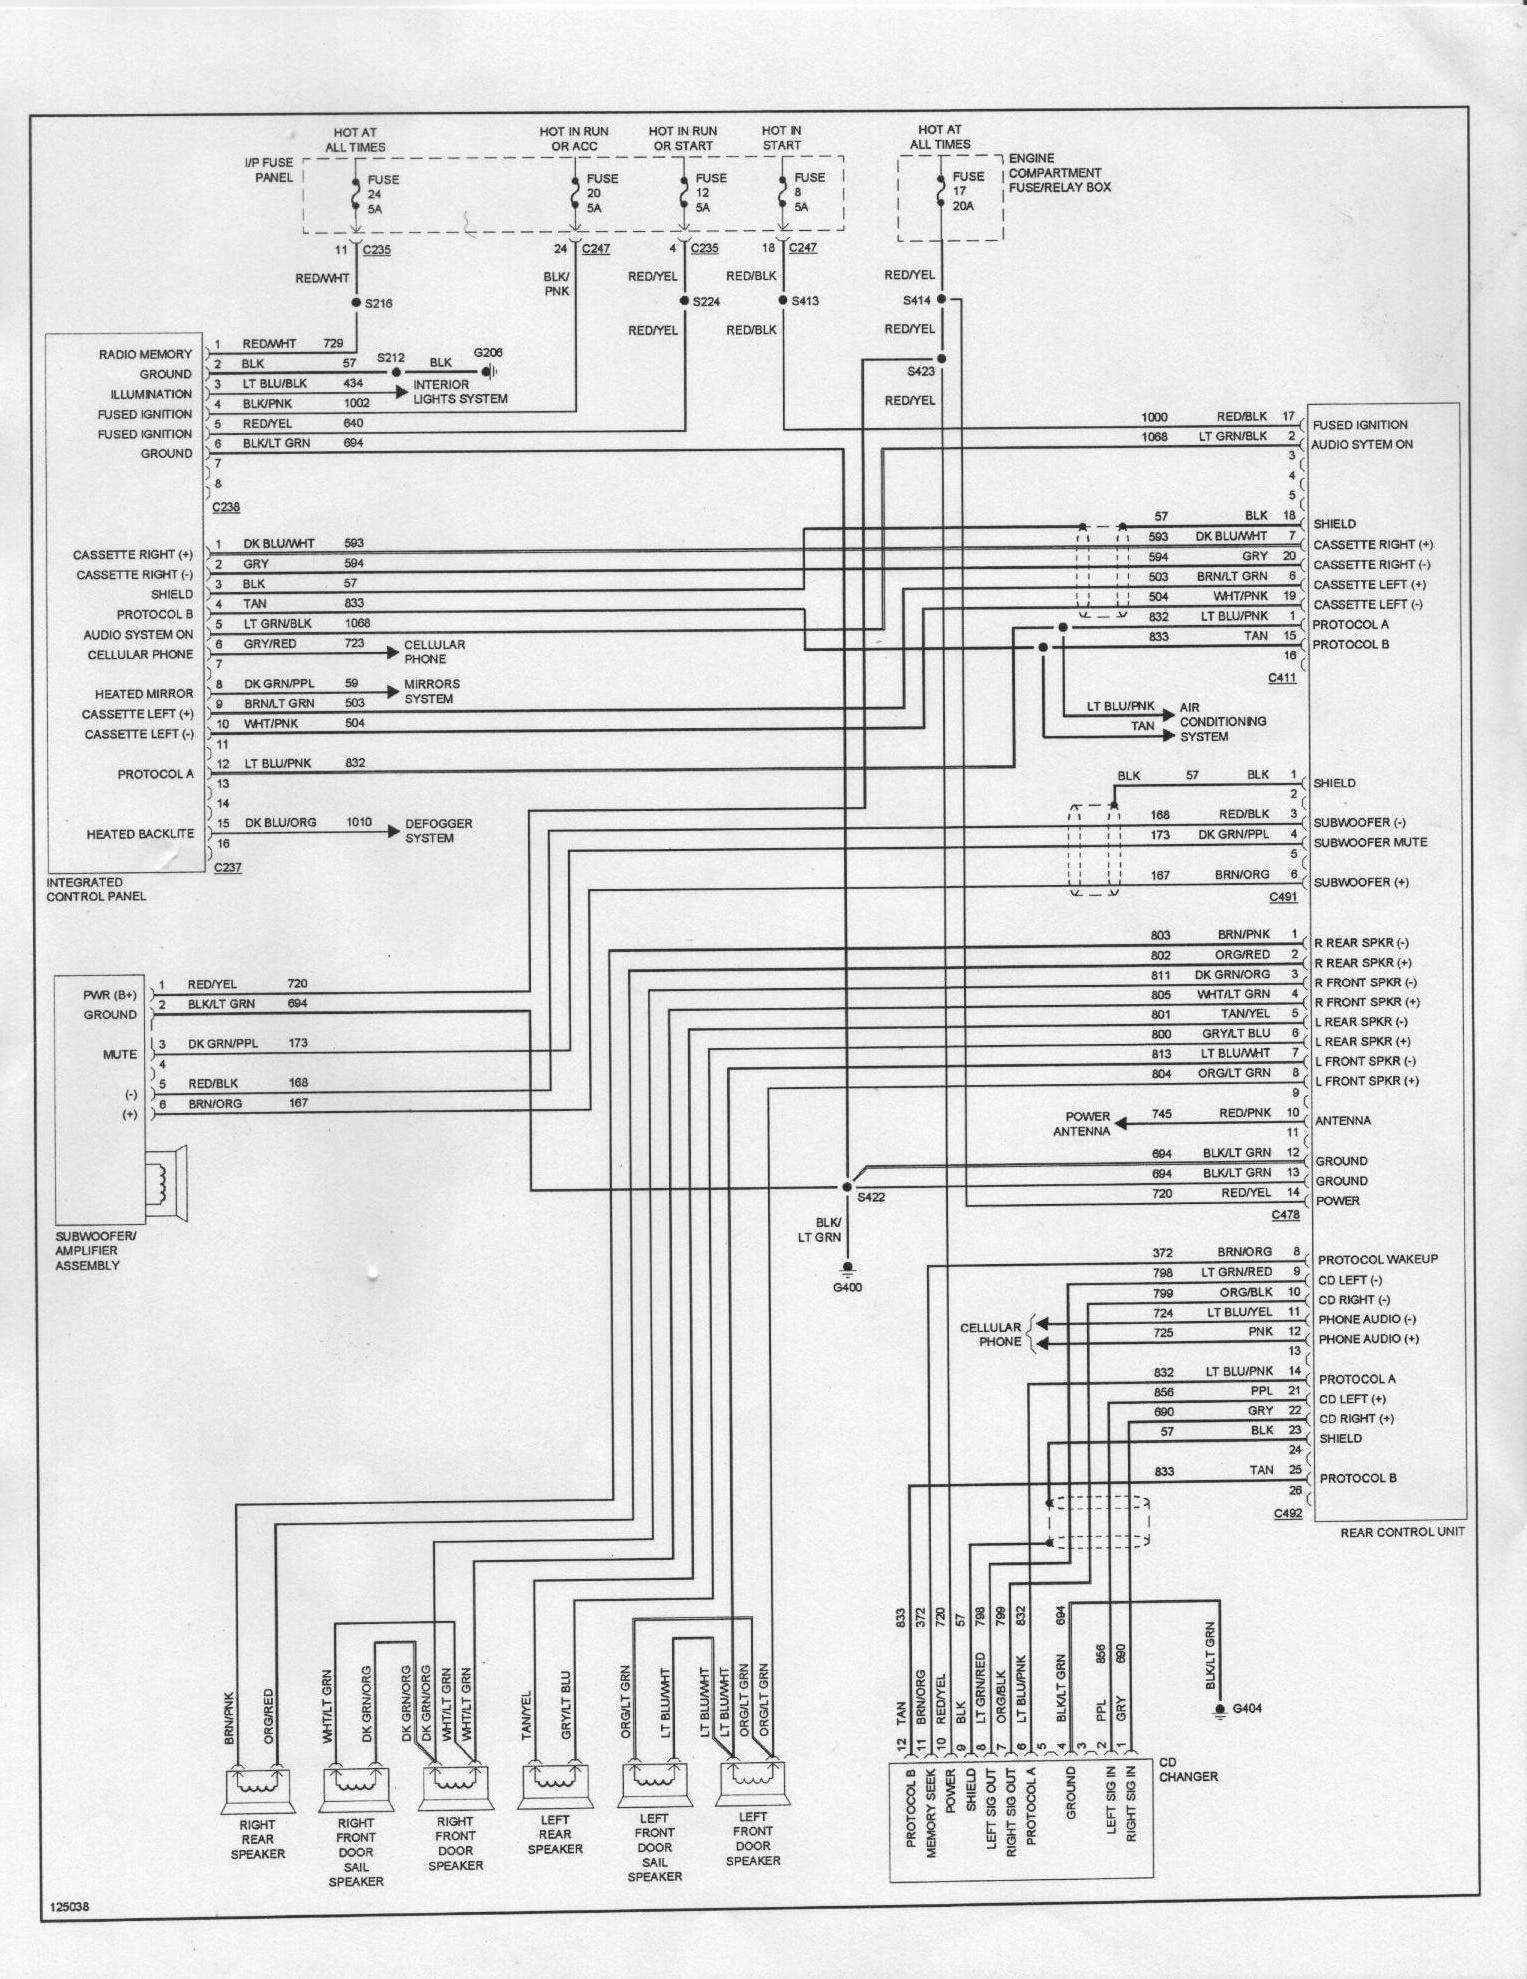 44917d1173064914 wiring diagram ford taurus diagram96 wiring diagram ford taurus taurus car club of america ford ford taurus wiring diagram at mifinder.co